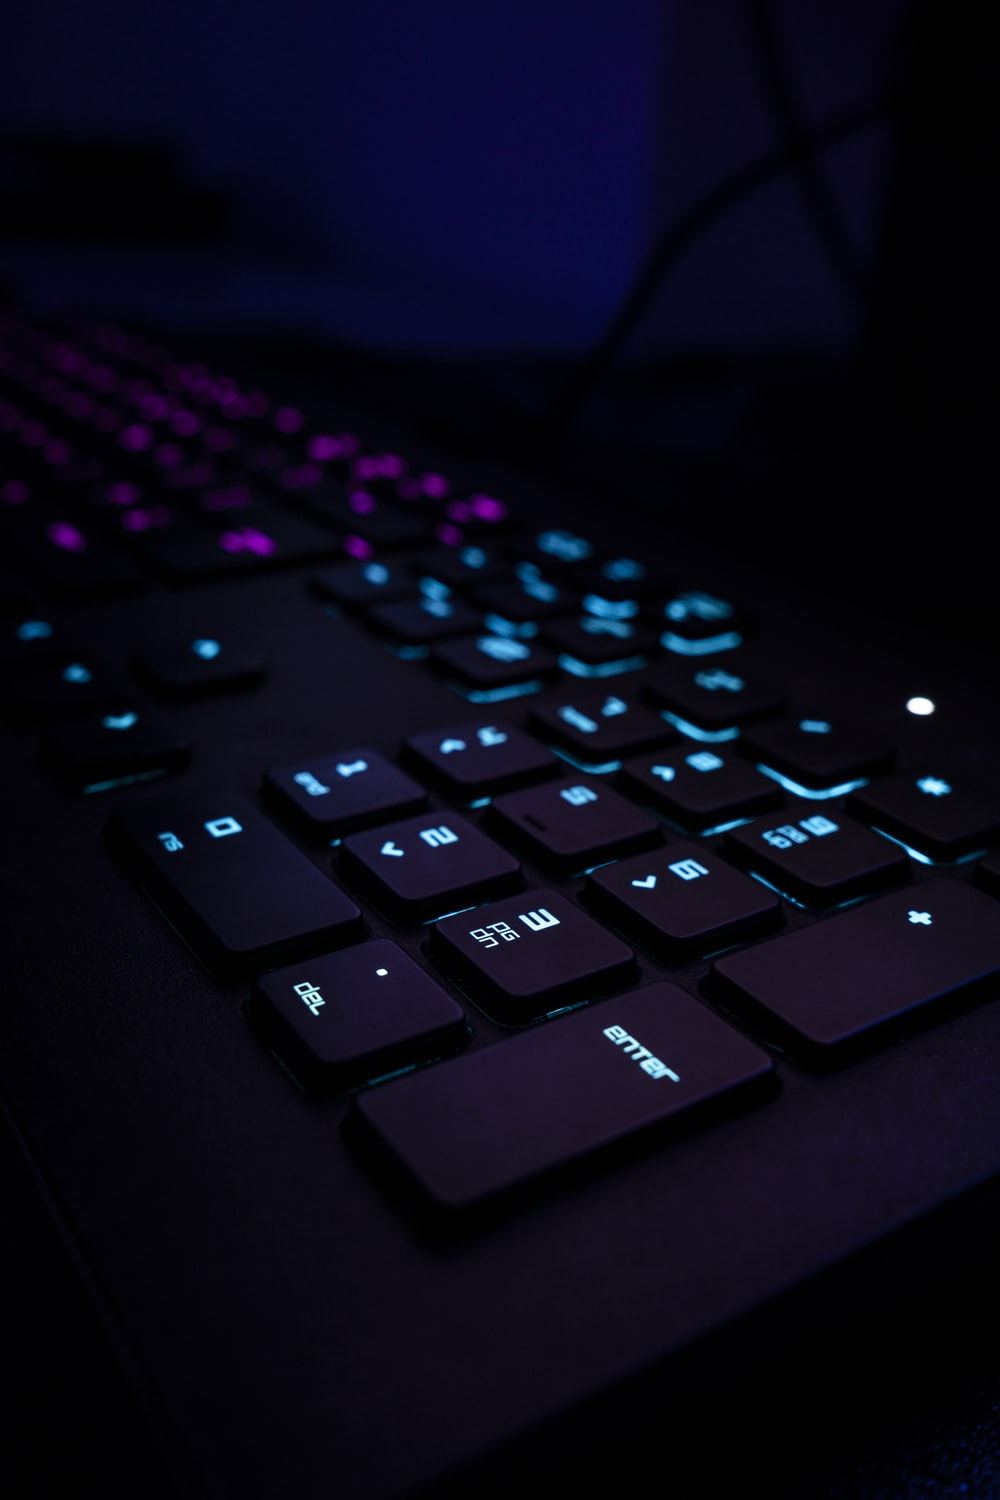 Gaming Keyboard Pictures Download Free Images On Unsplash